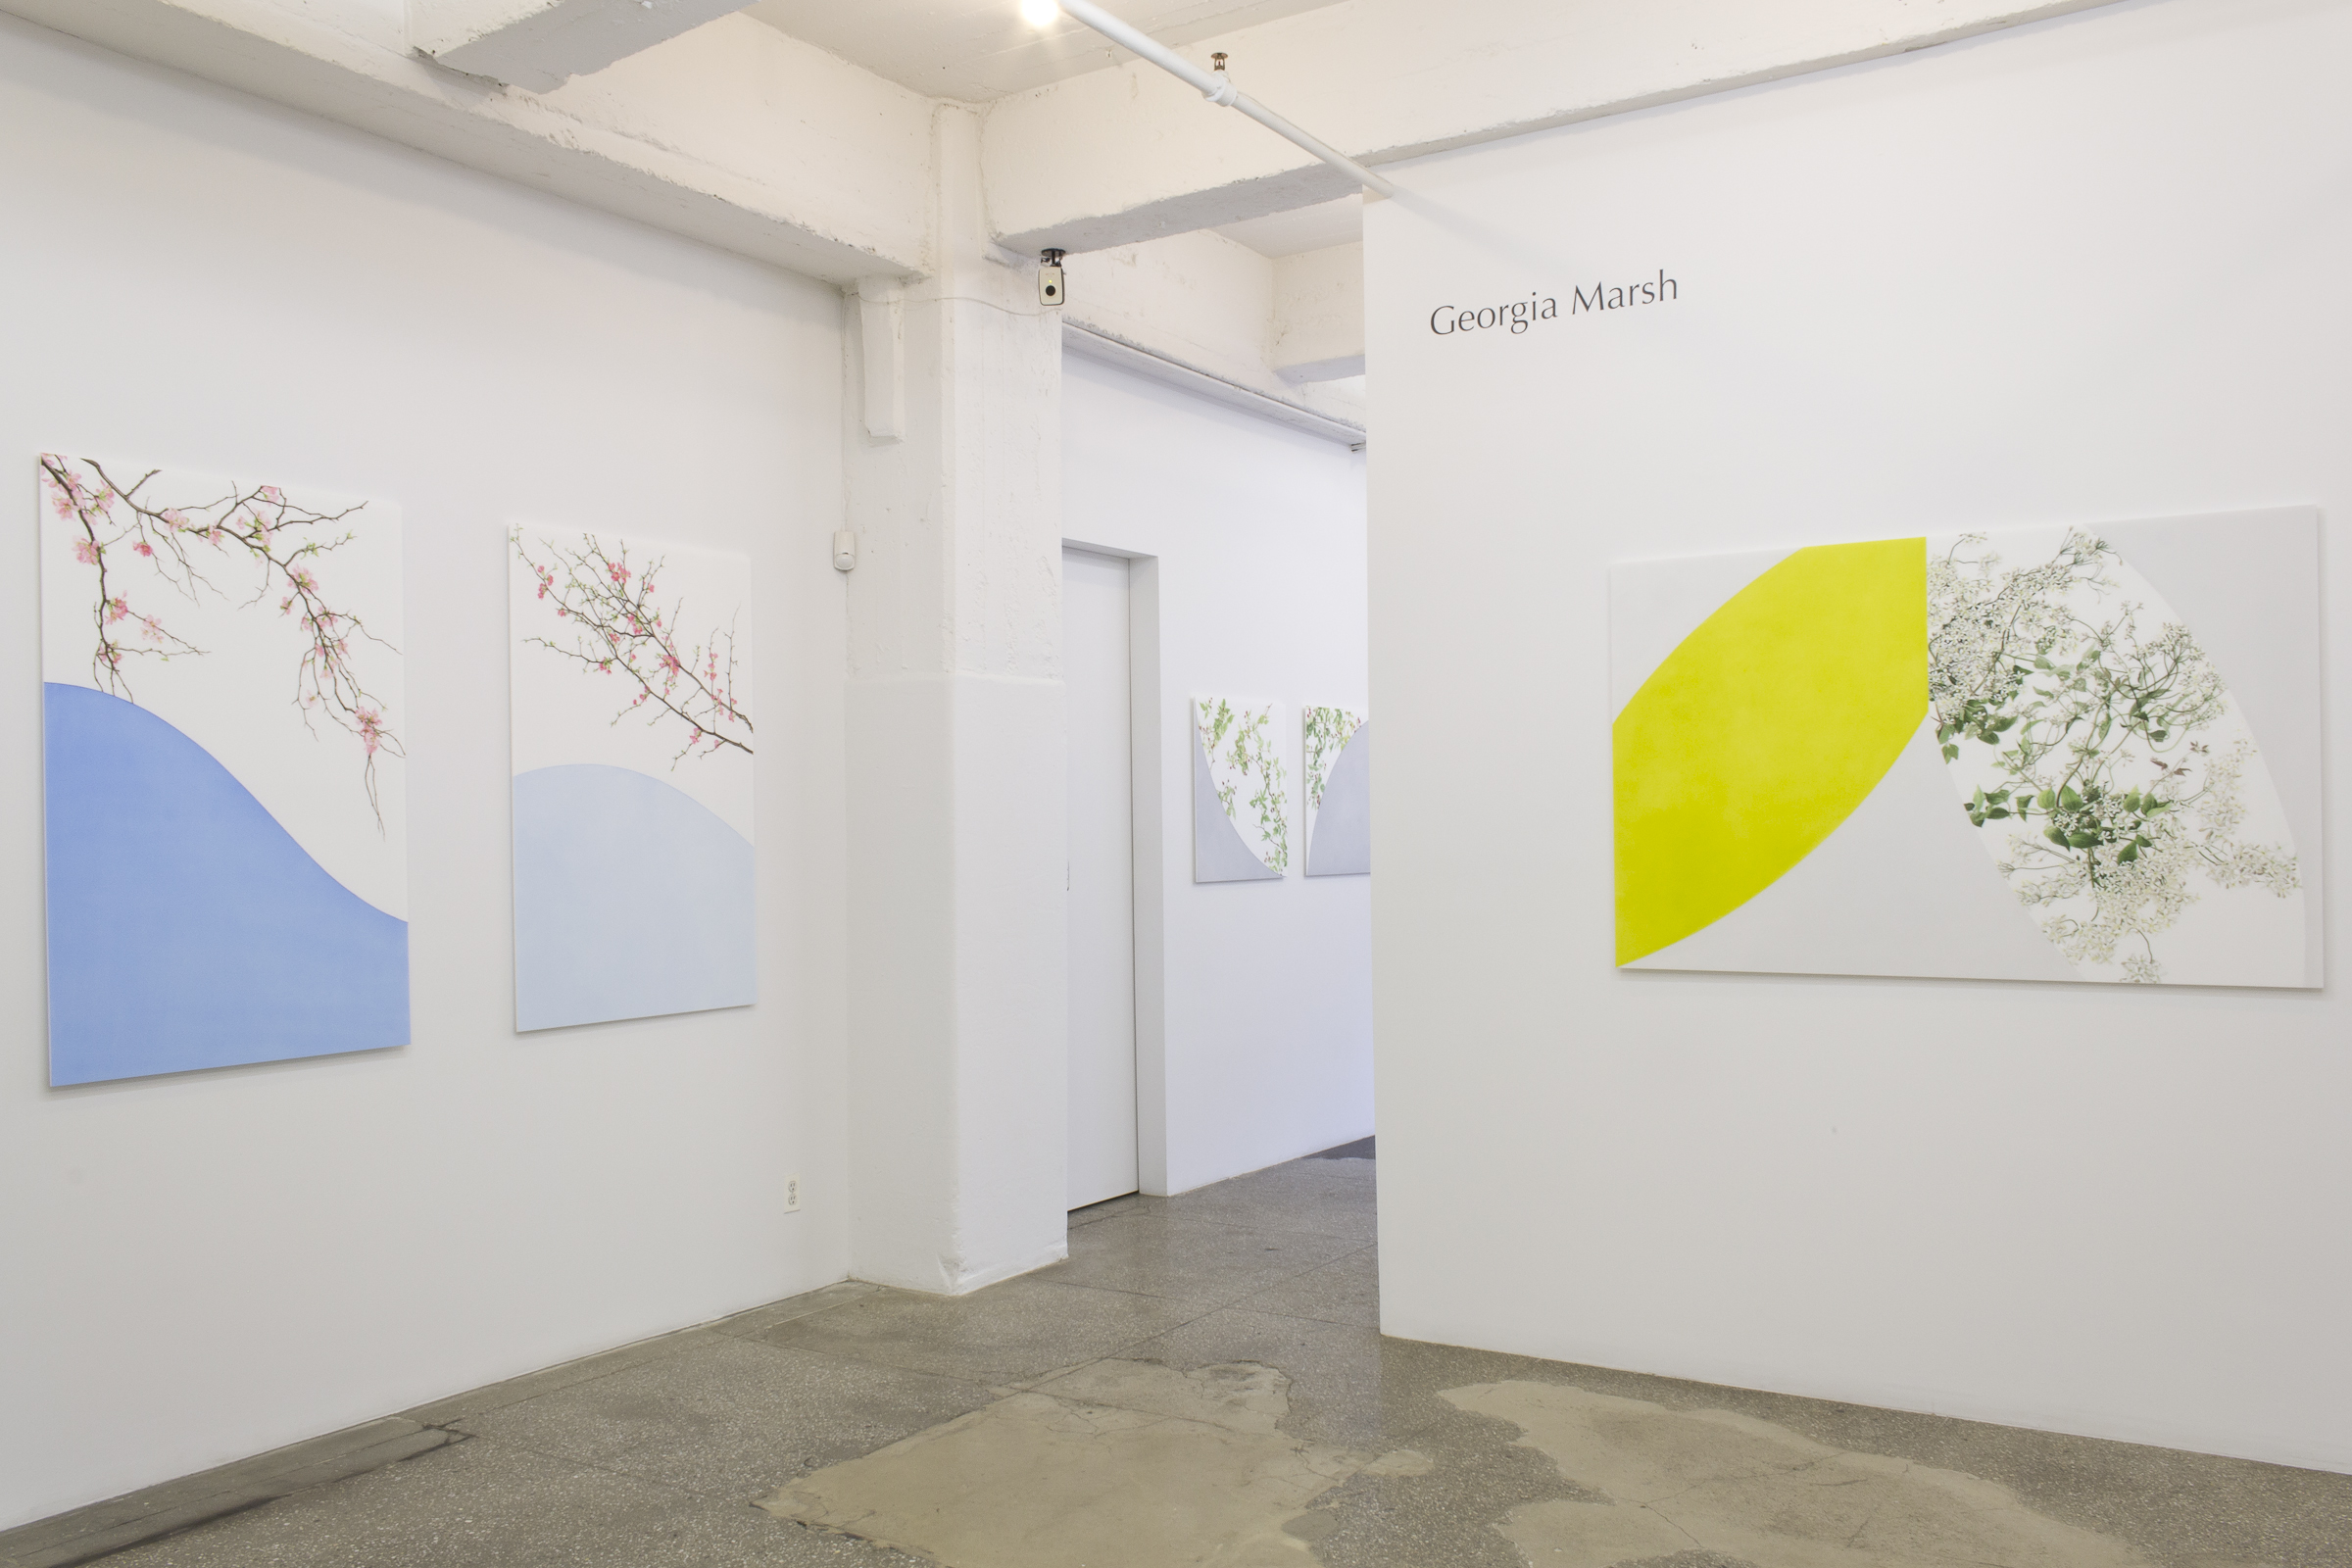 Installation View: Georgia Marsh: Arc Paintings